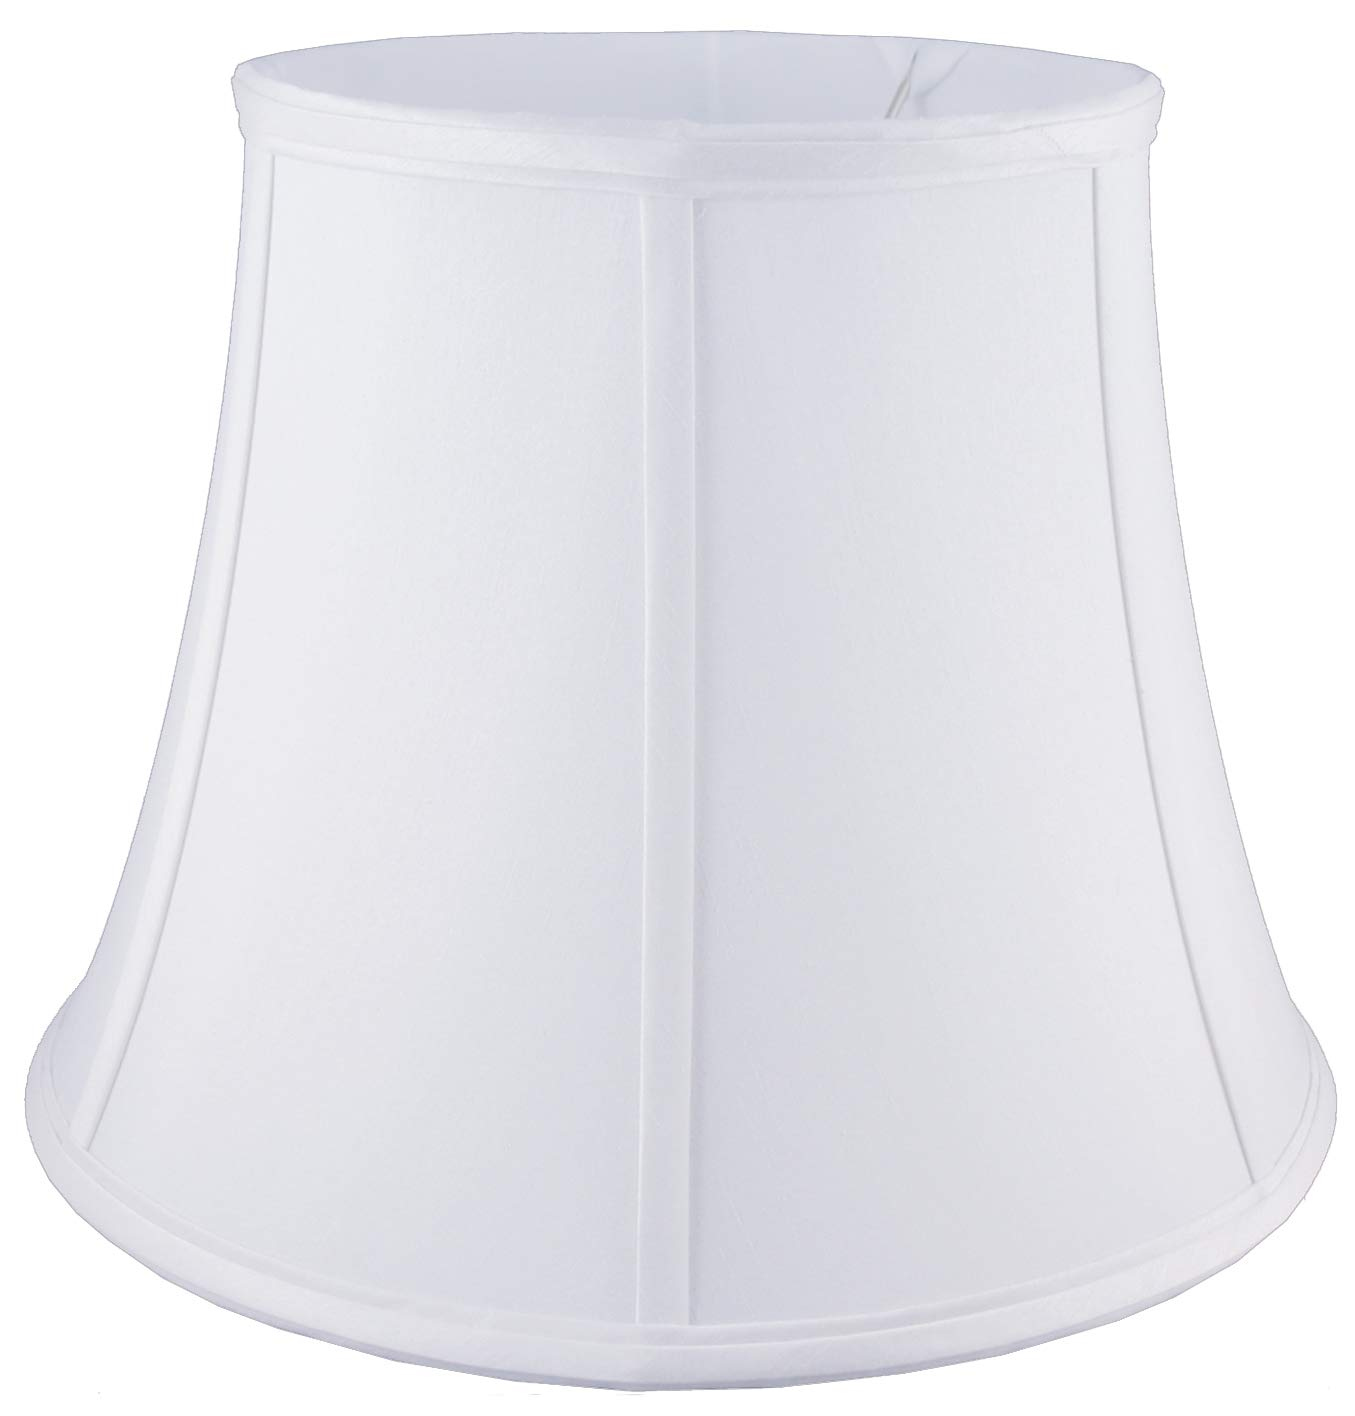 American Pride 11''x 17''x 12.75'' Round Soft Shantung Tailored Lampshade, White